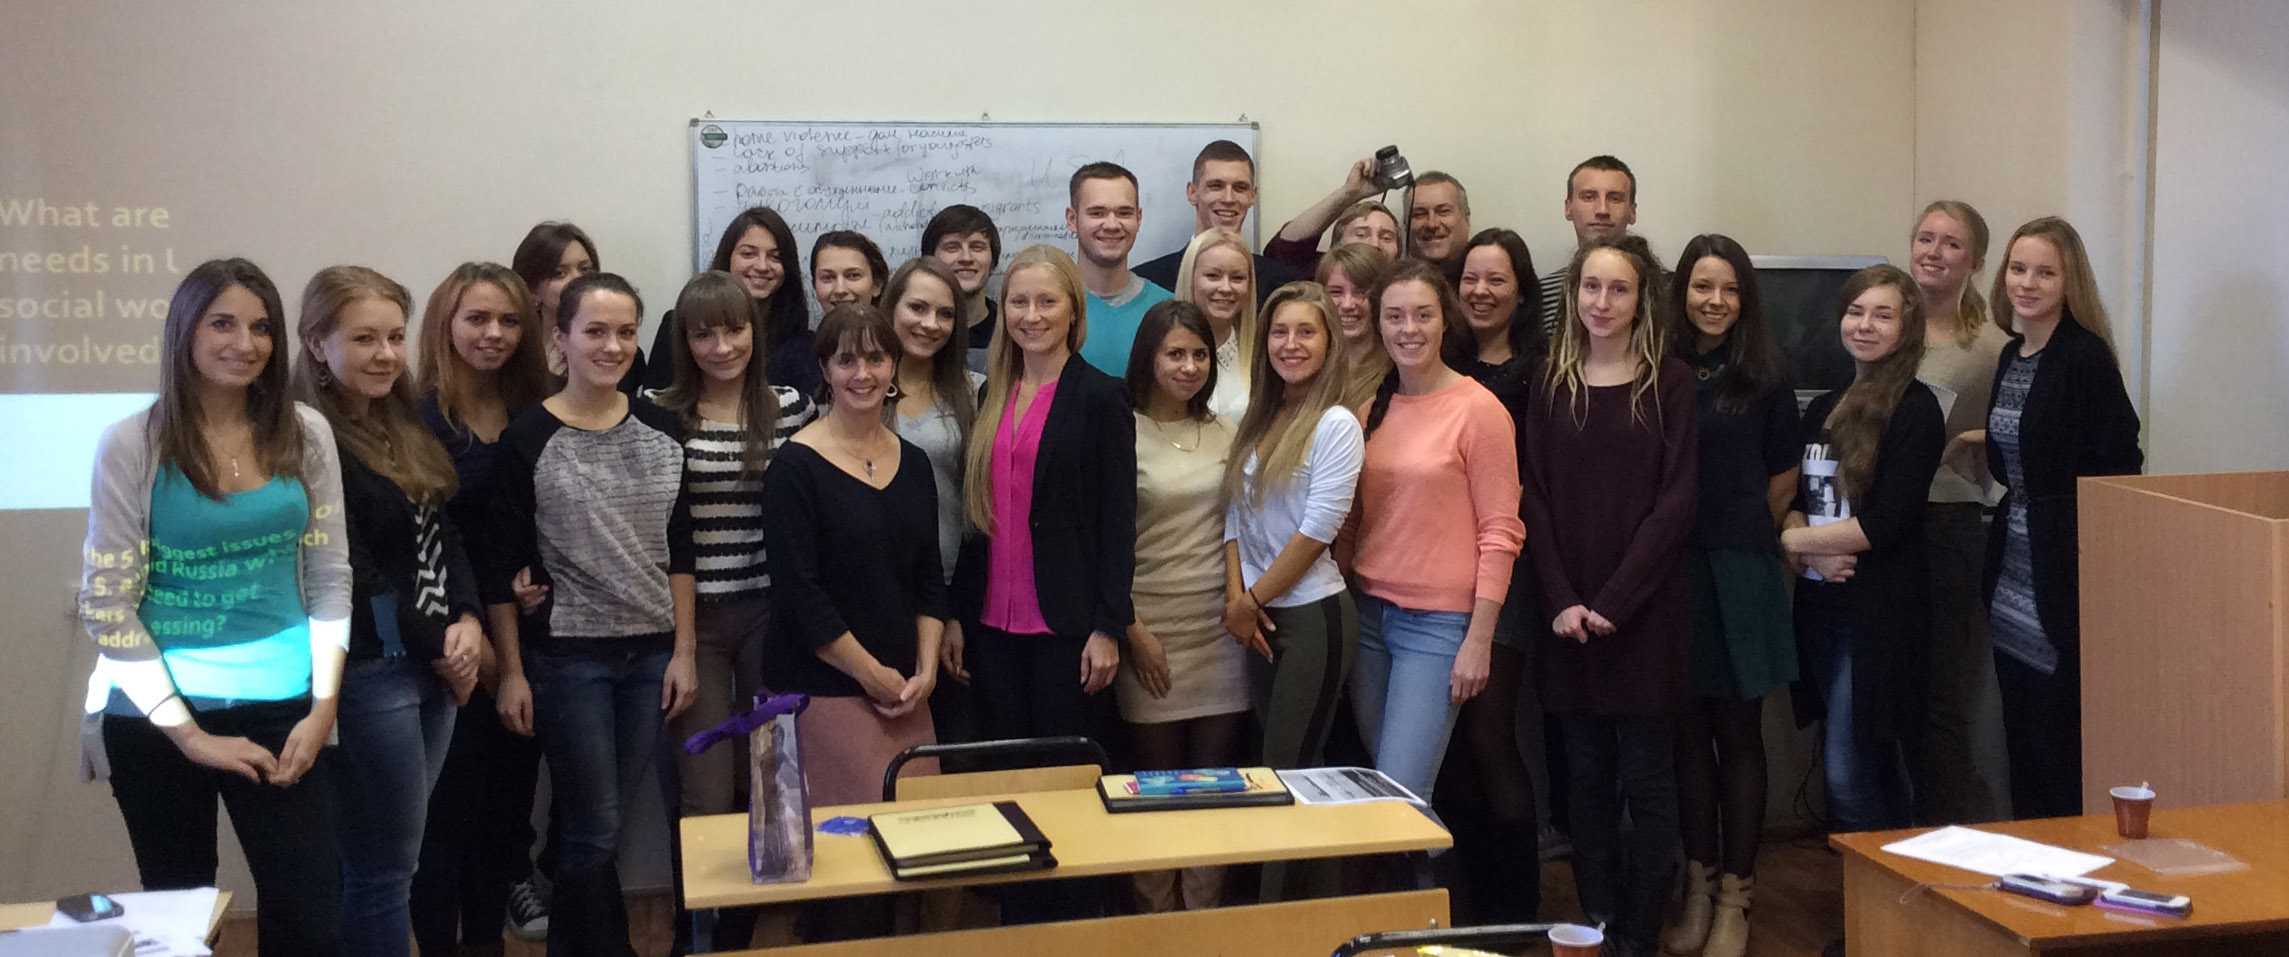 Social Work students at Petrozavodsk State University during the October 2014